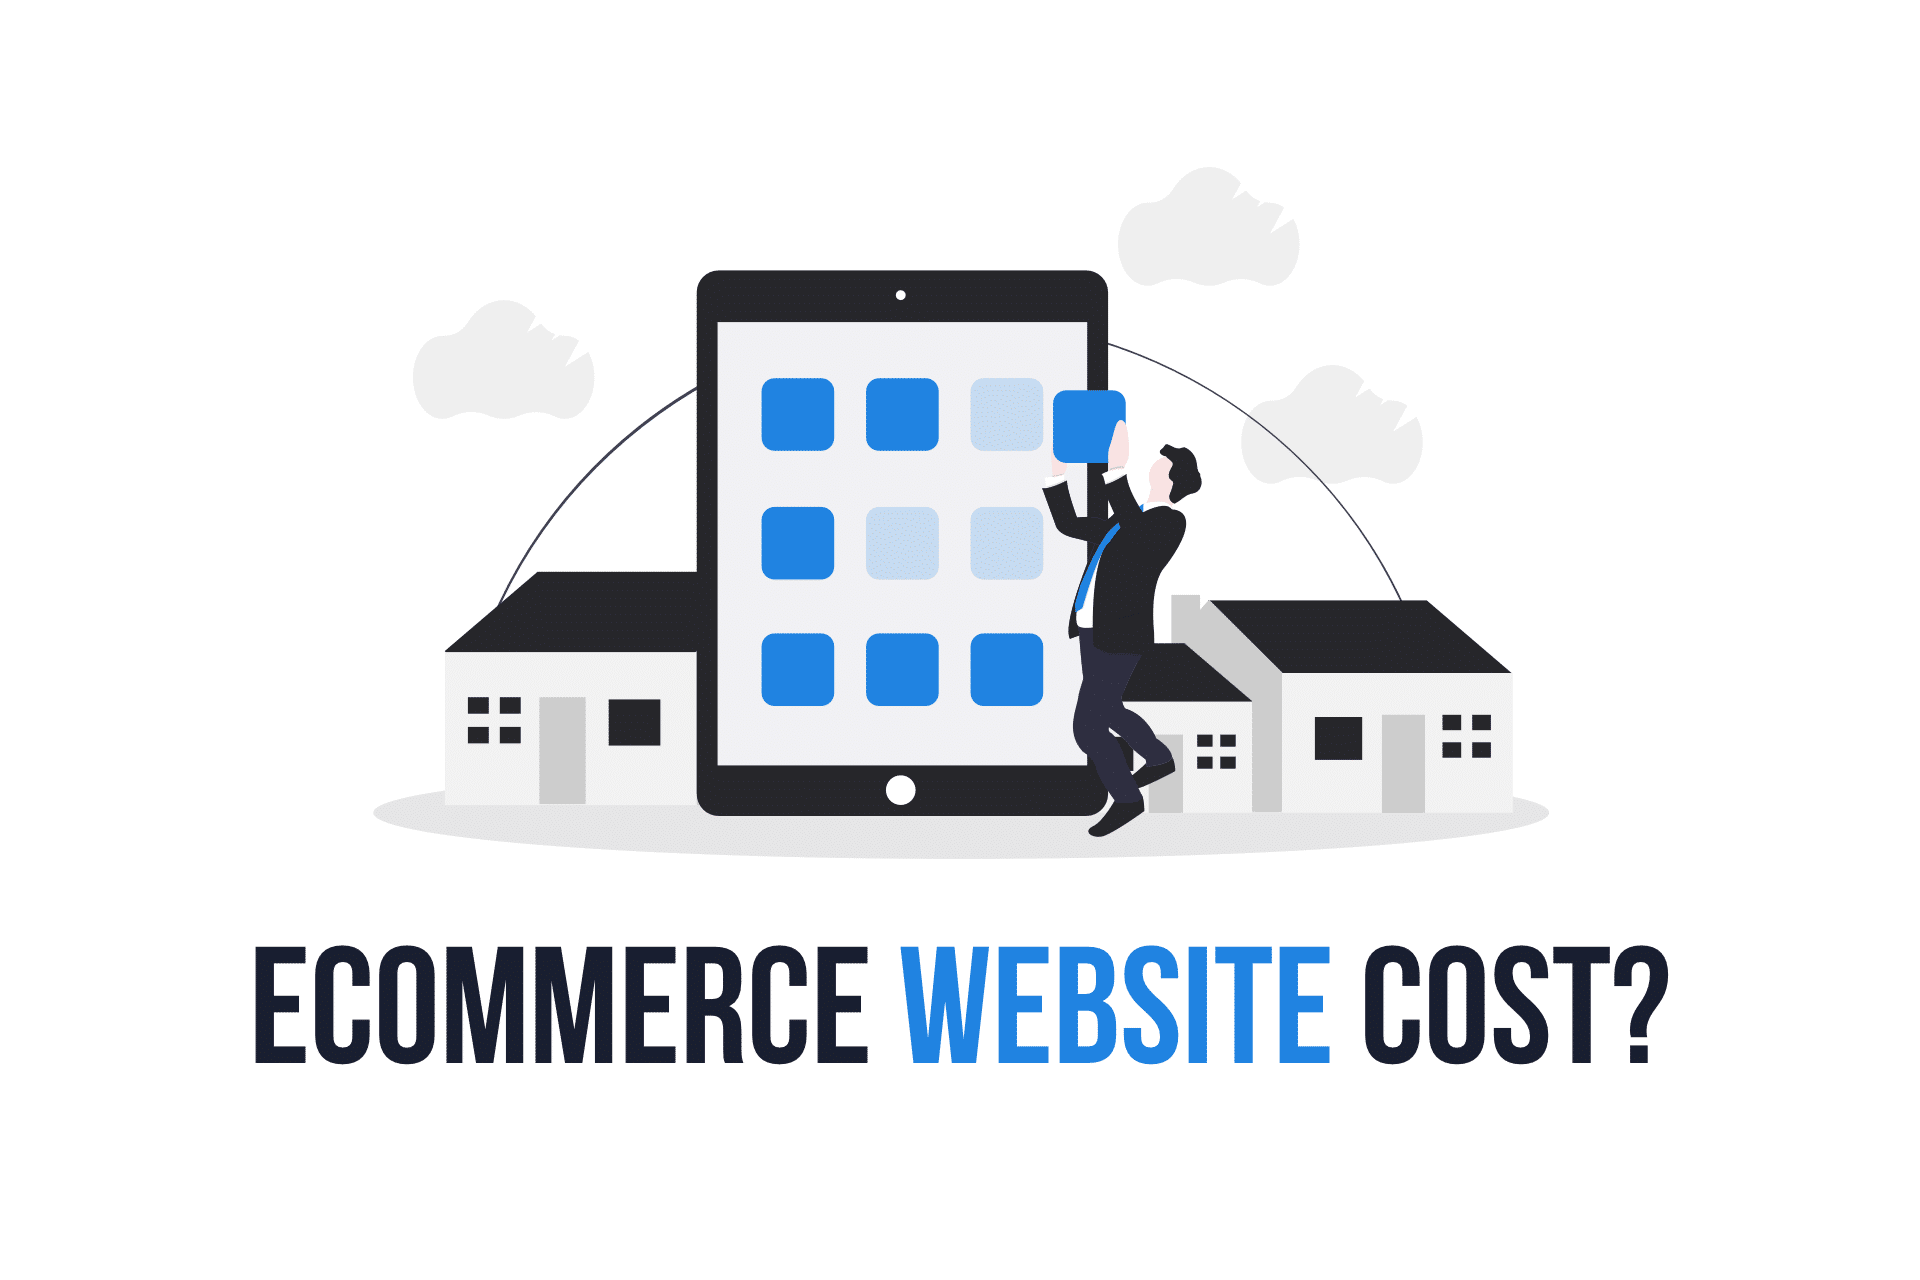 How Much Does an Ecommerce Website Cost? | On the Map, Inc